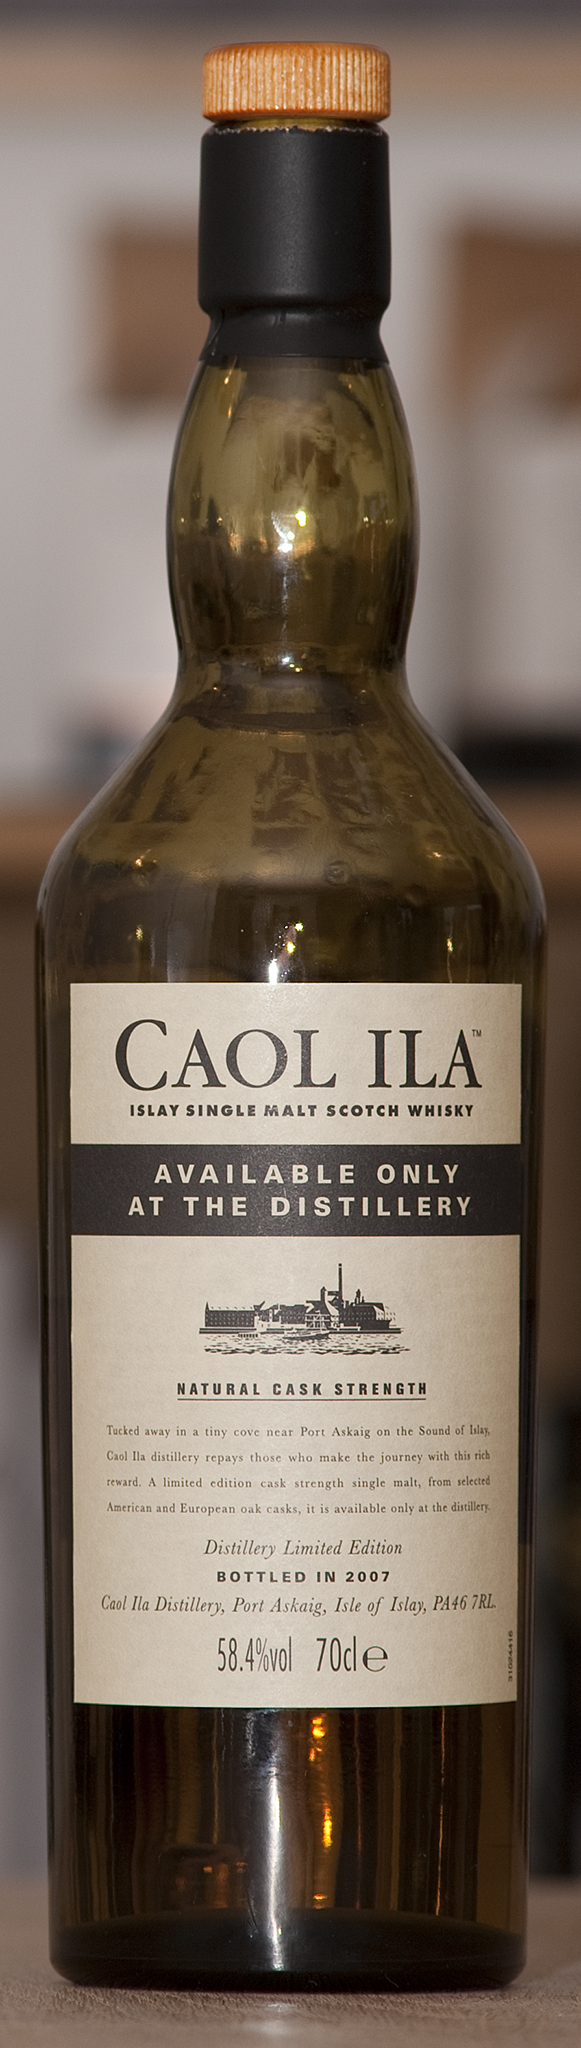 Billede: caol_ila_distillery_limited_edition_large.jpg